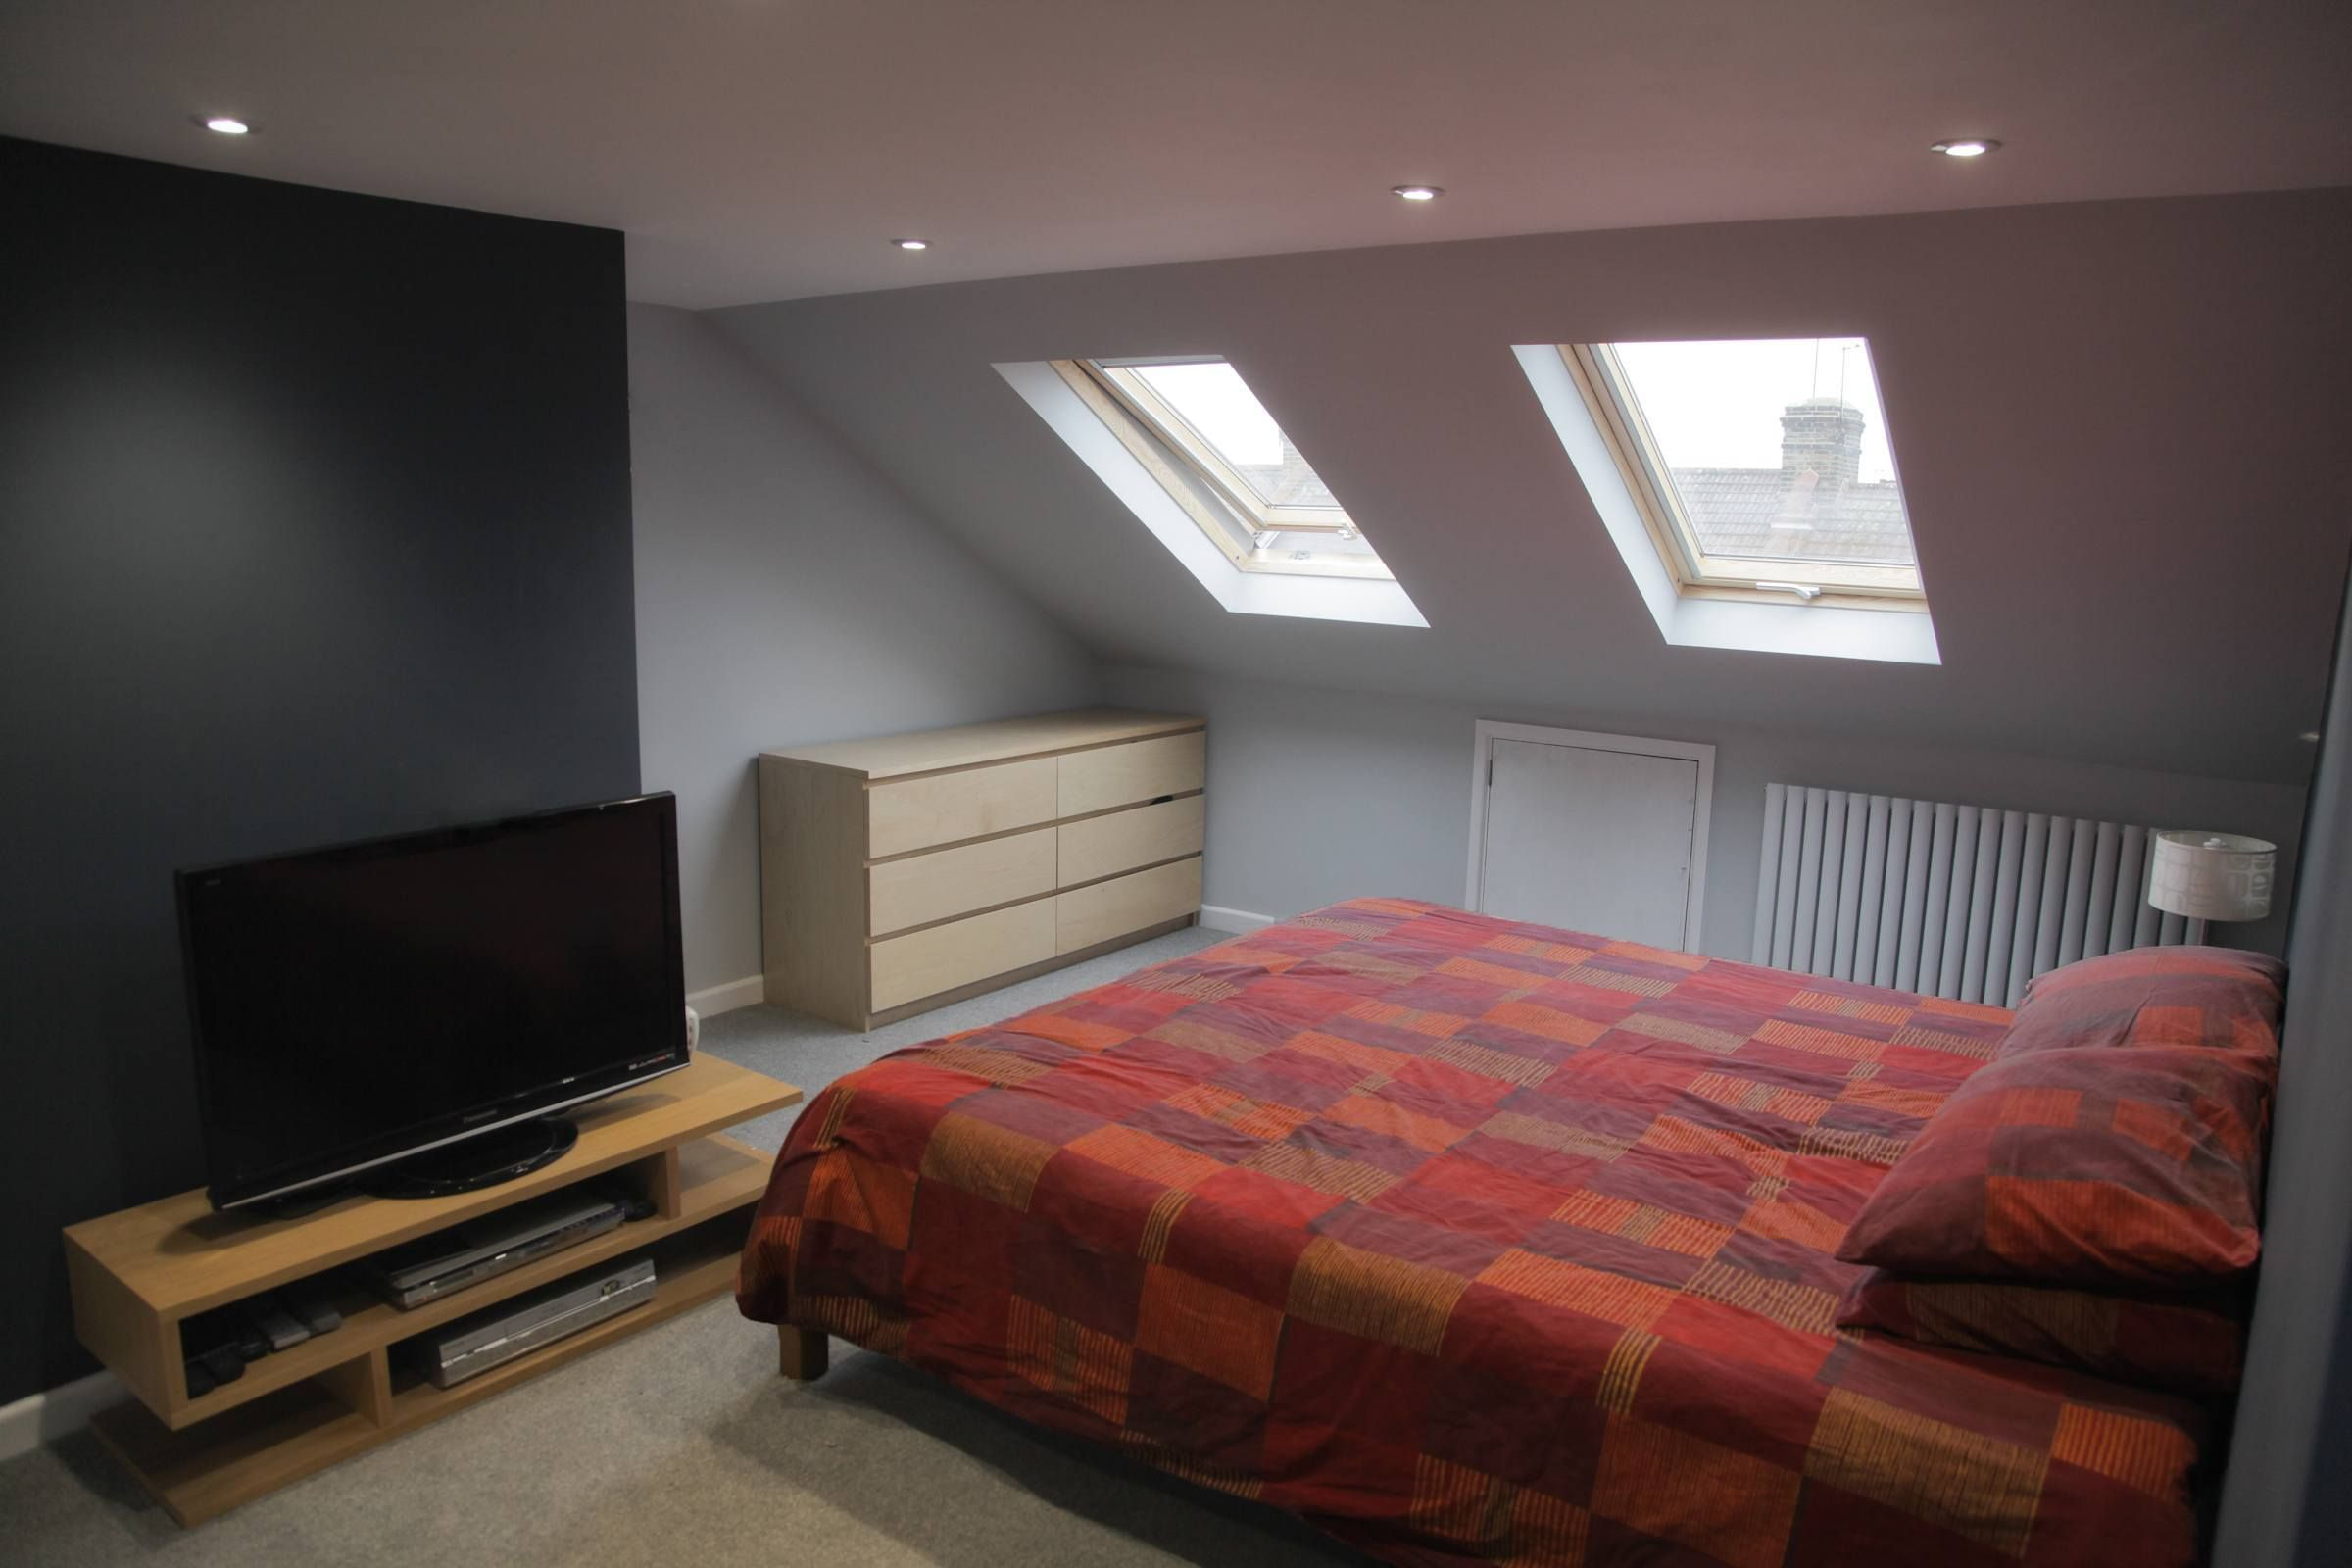 lighting for lofts. Low Ceiling Height Loft Conversion - Google Search Lighting For Lofts G